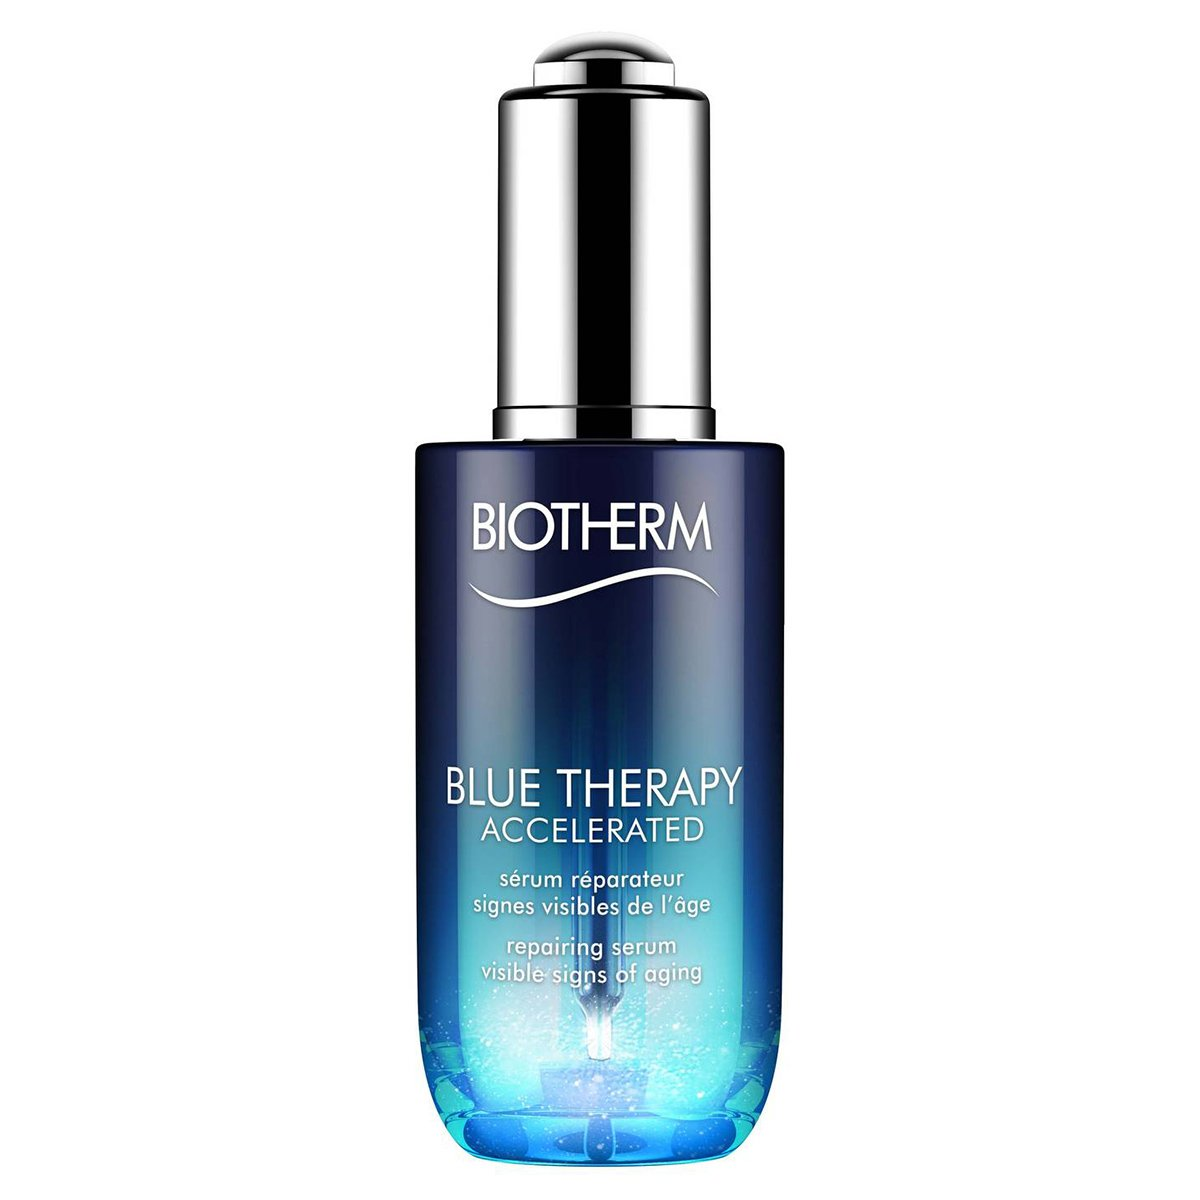 Biotherm - Blue Therapy - Accelerated Serum